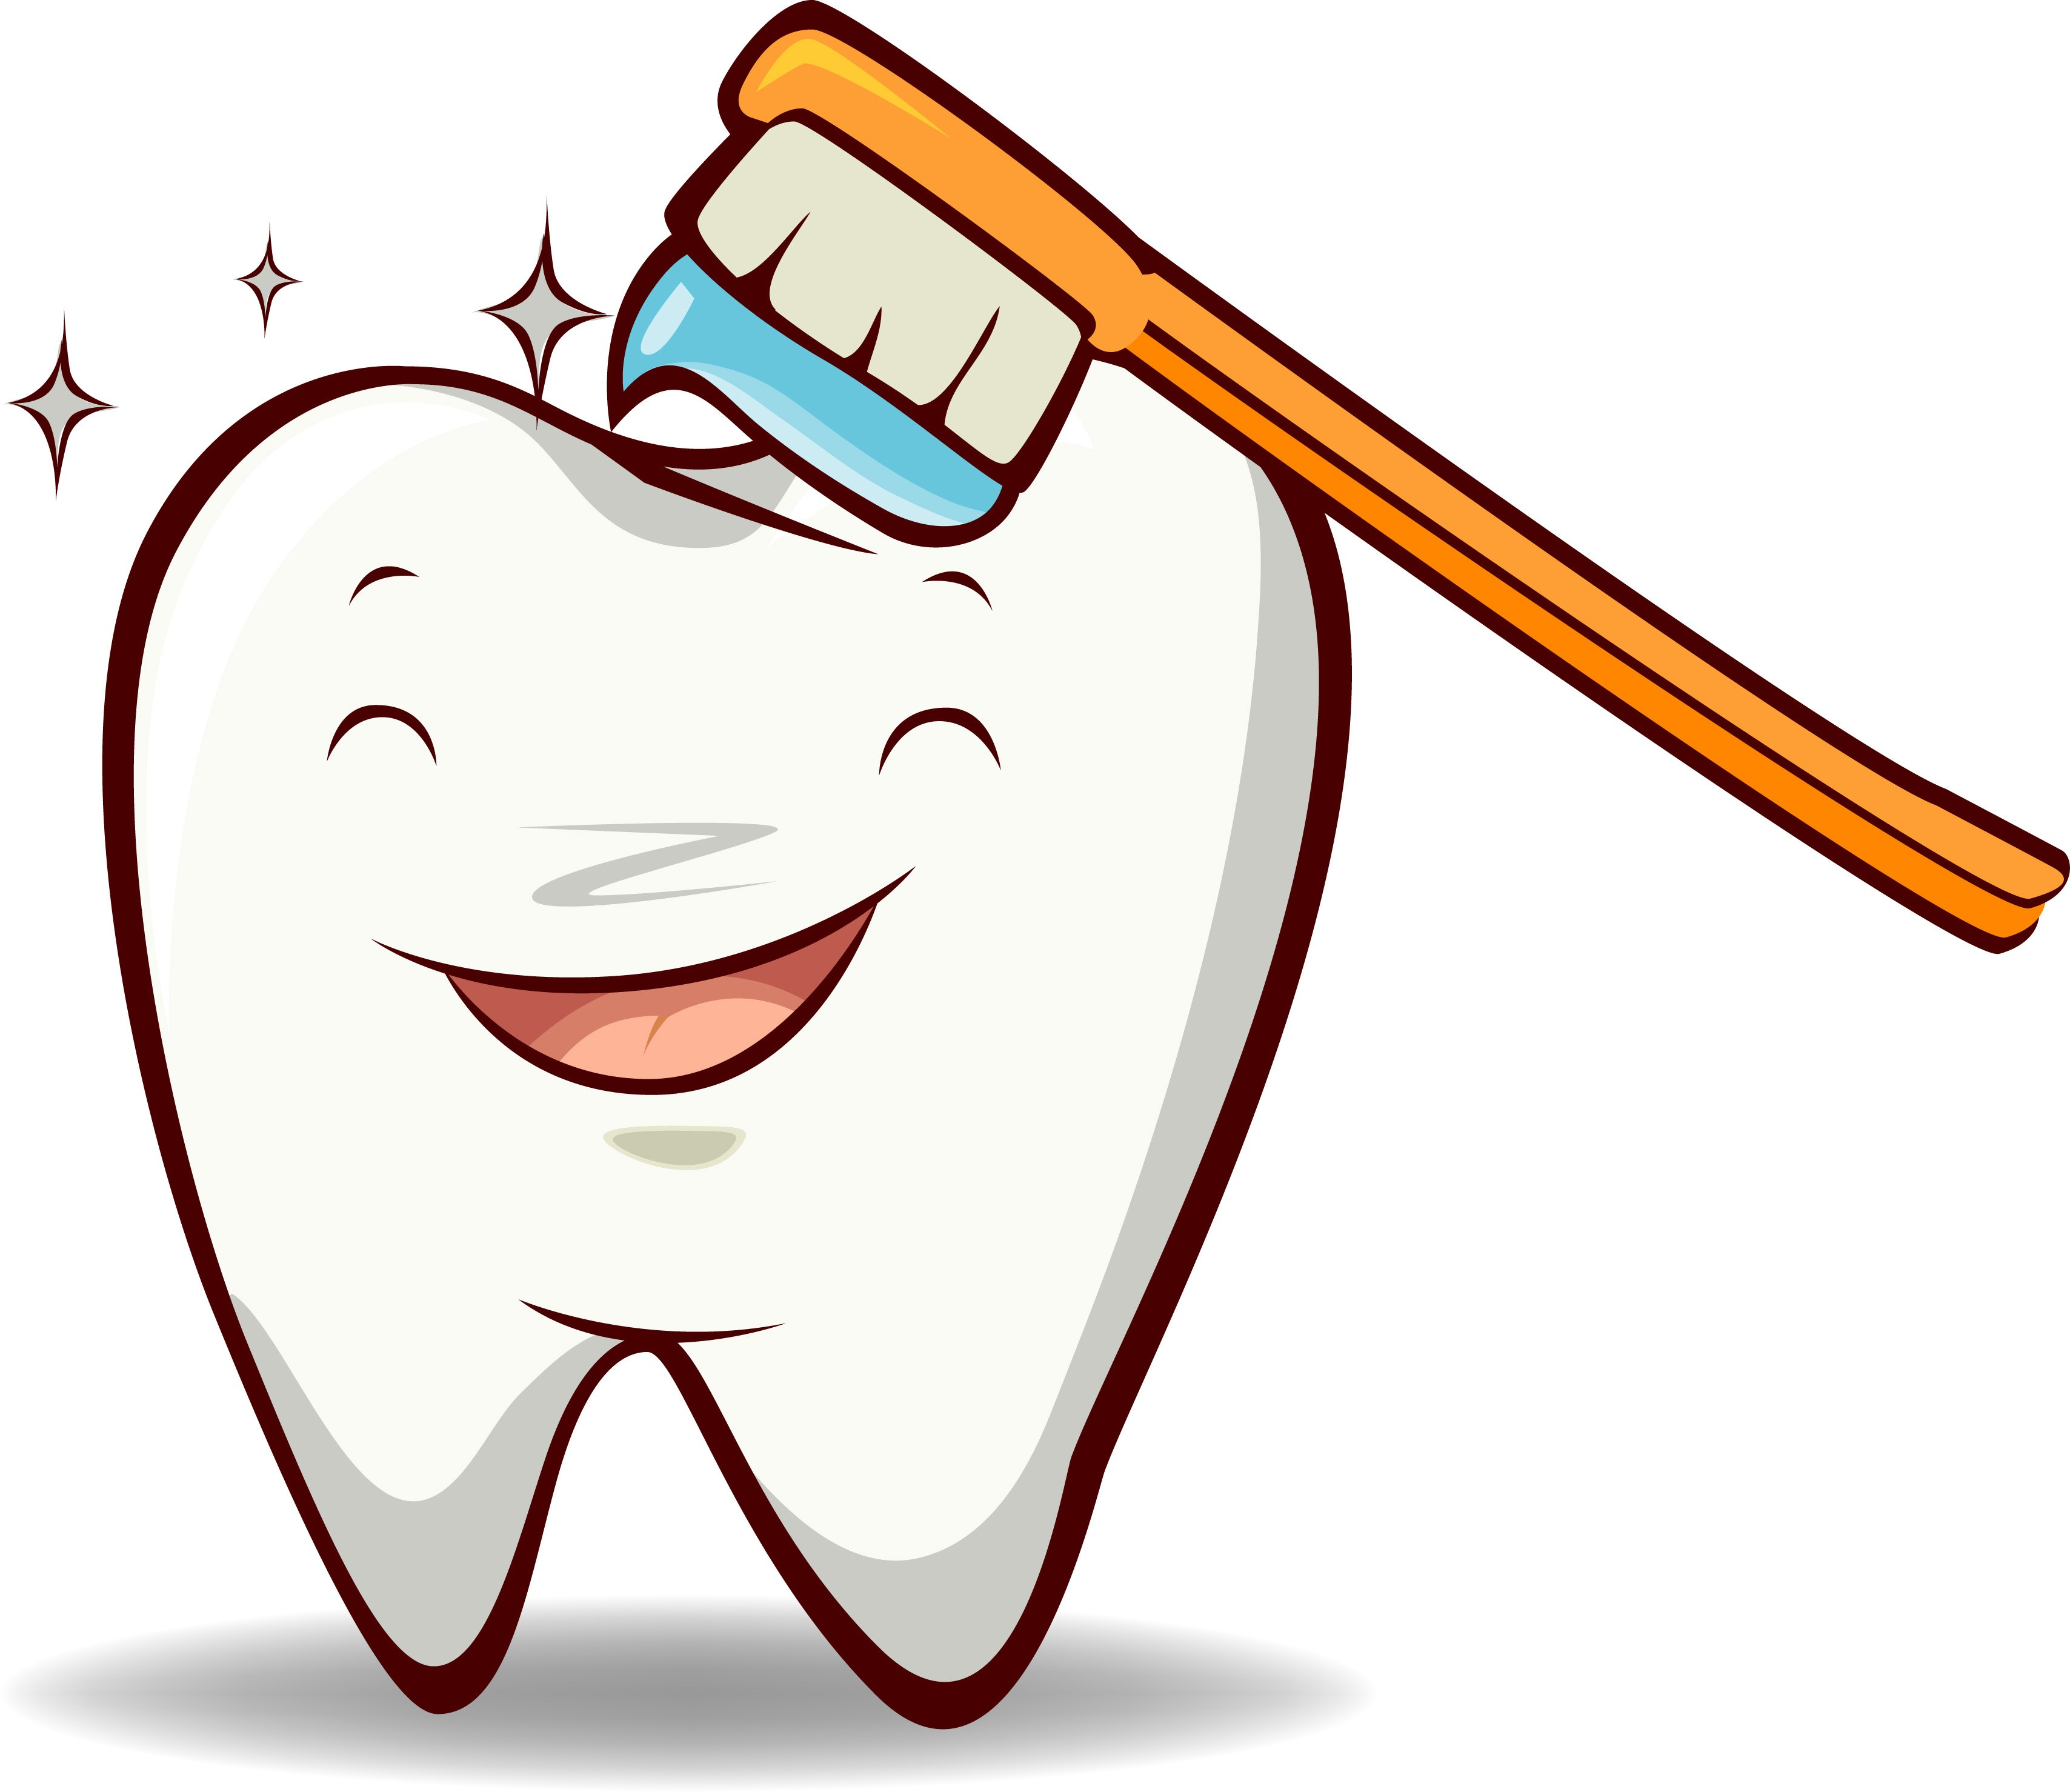 Cute tooth with hearts clipart image free library Cute tooth with hearts clipart - ClipartFest image free library